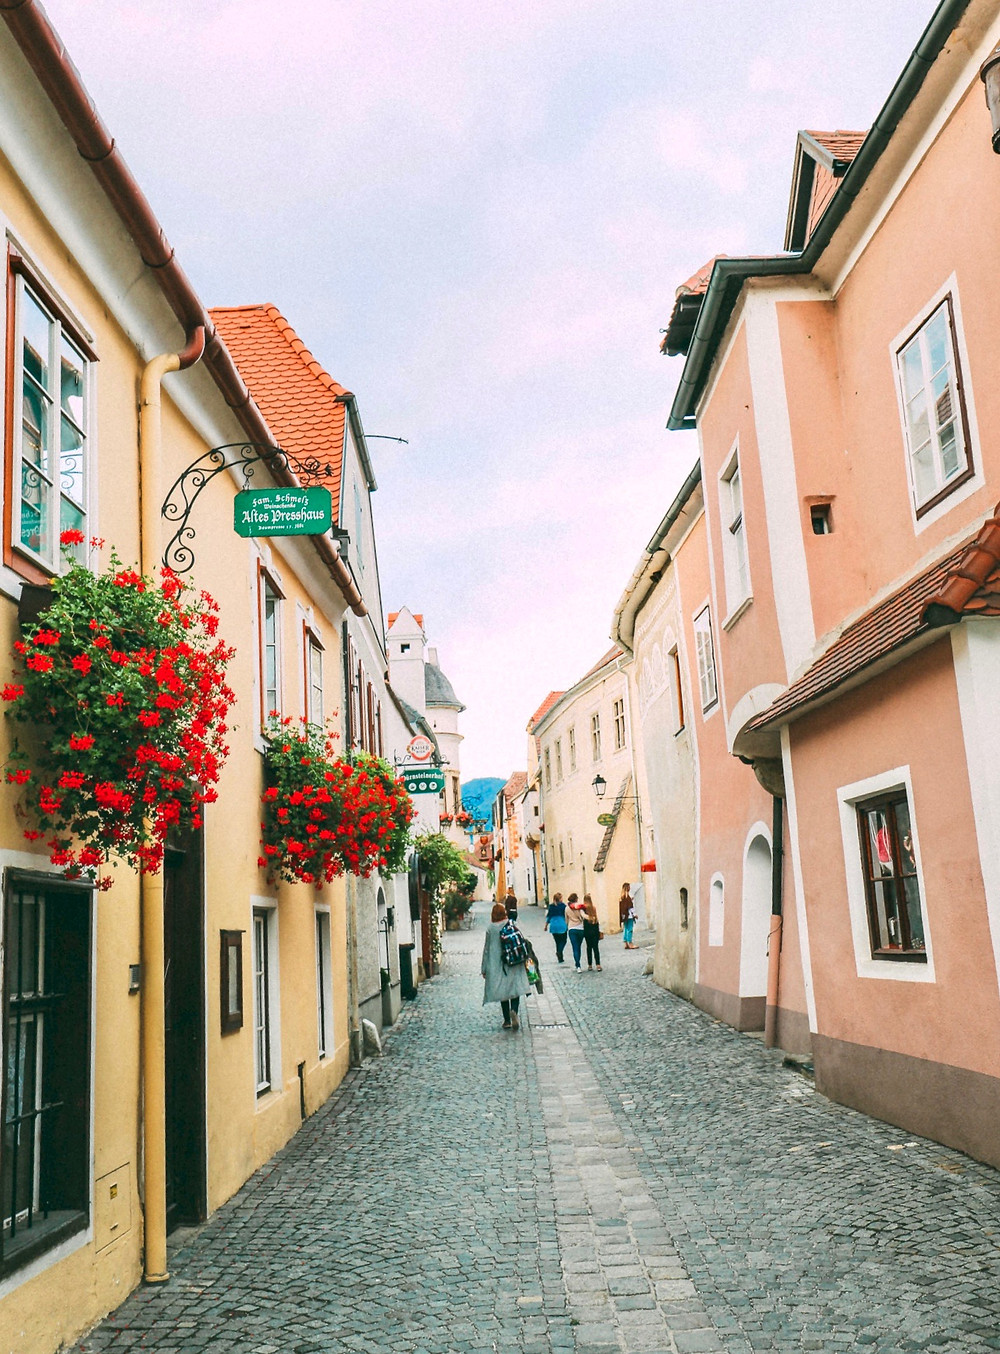 pastel houses line the cobbled streets of Durnstein Austria